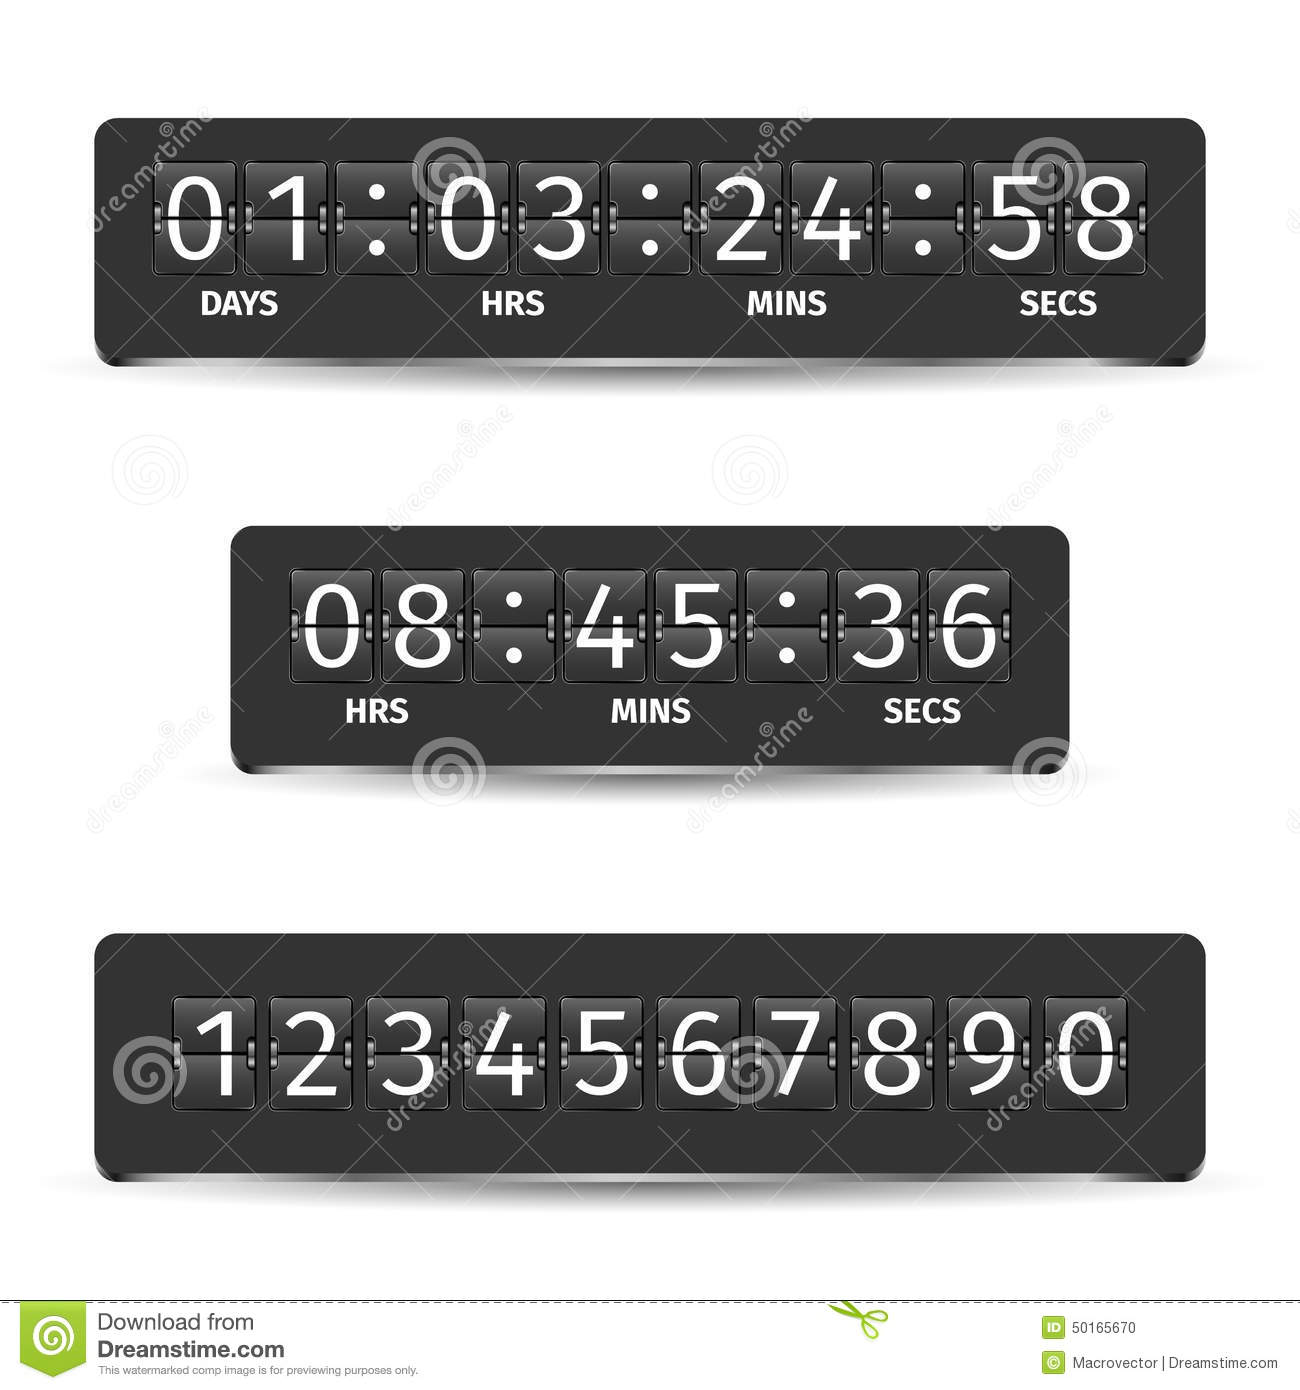 Time and date countdown in Brisbane